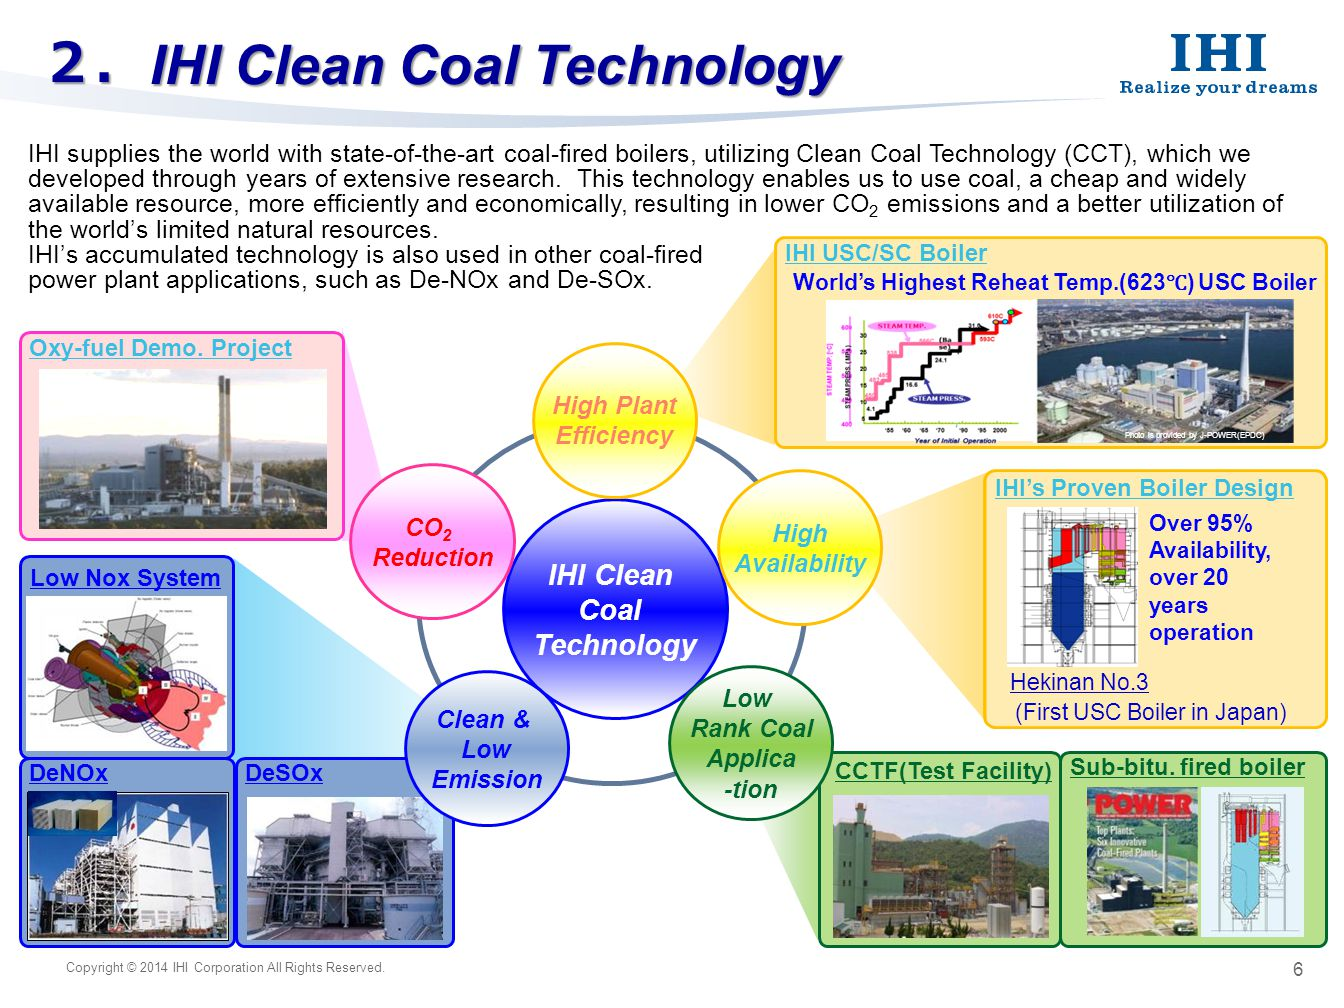 using clean coal technologies to reduce